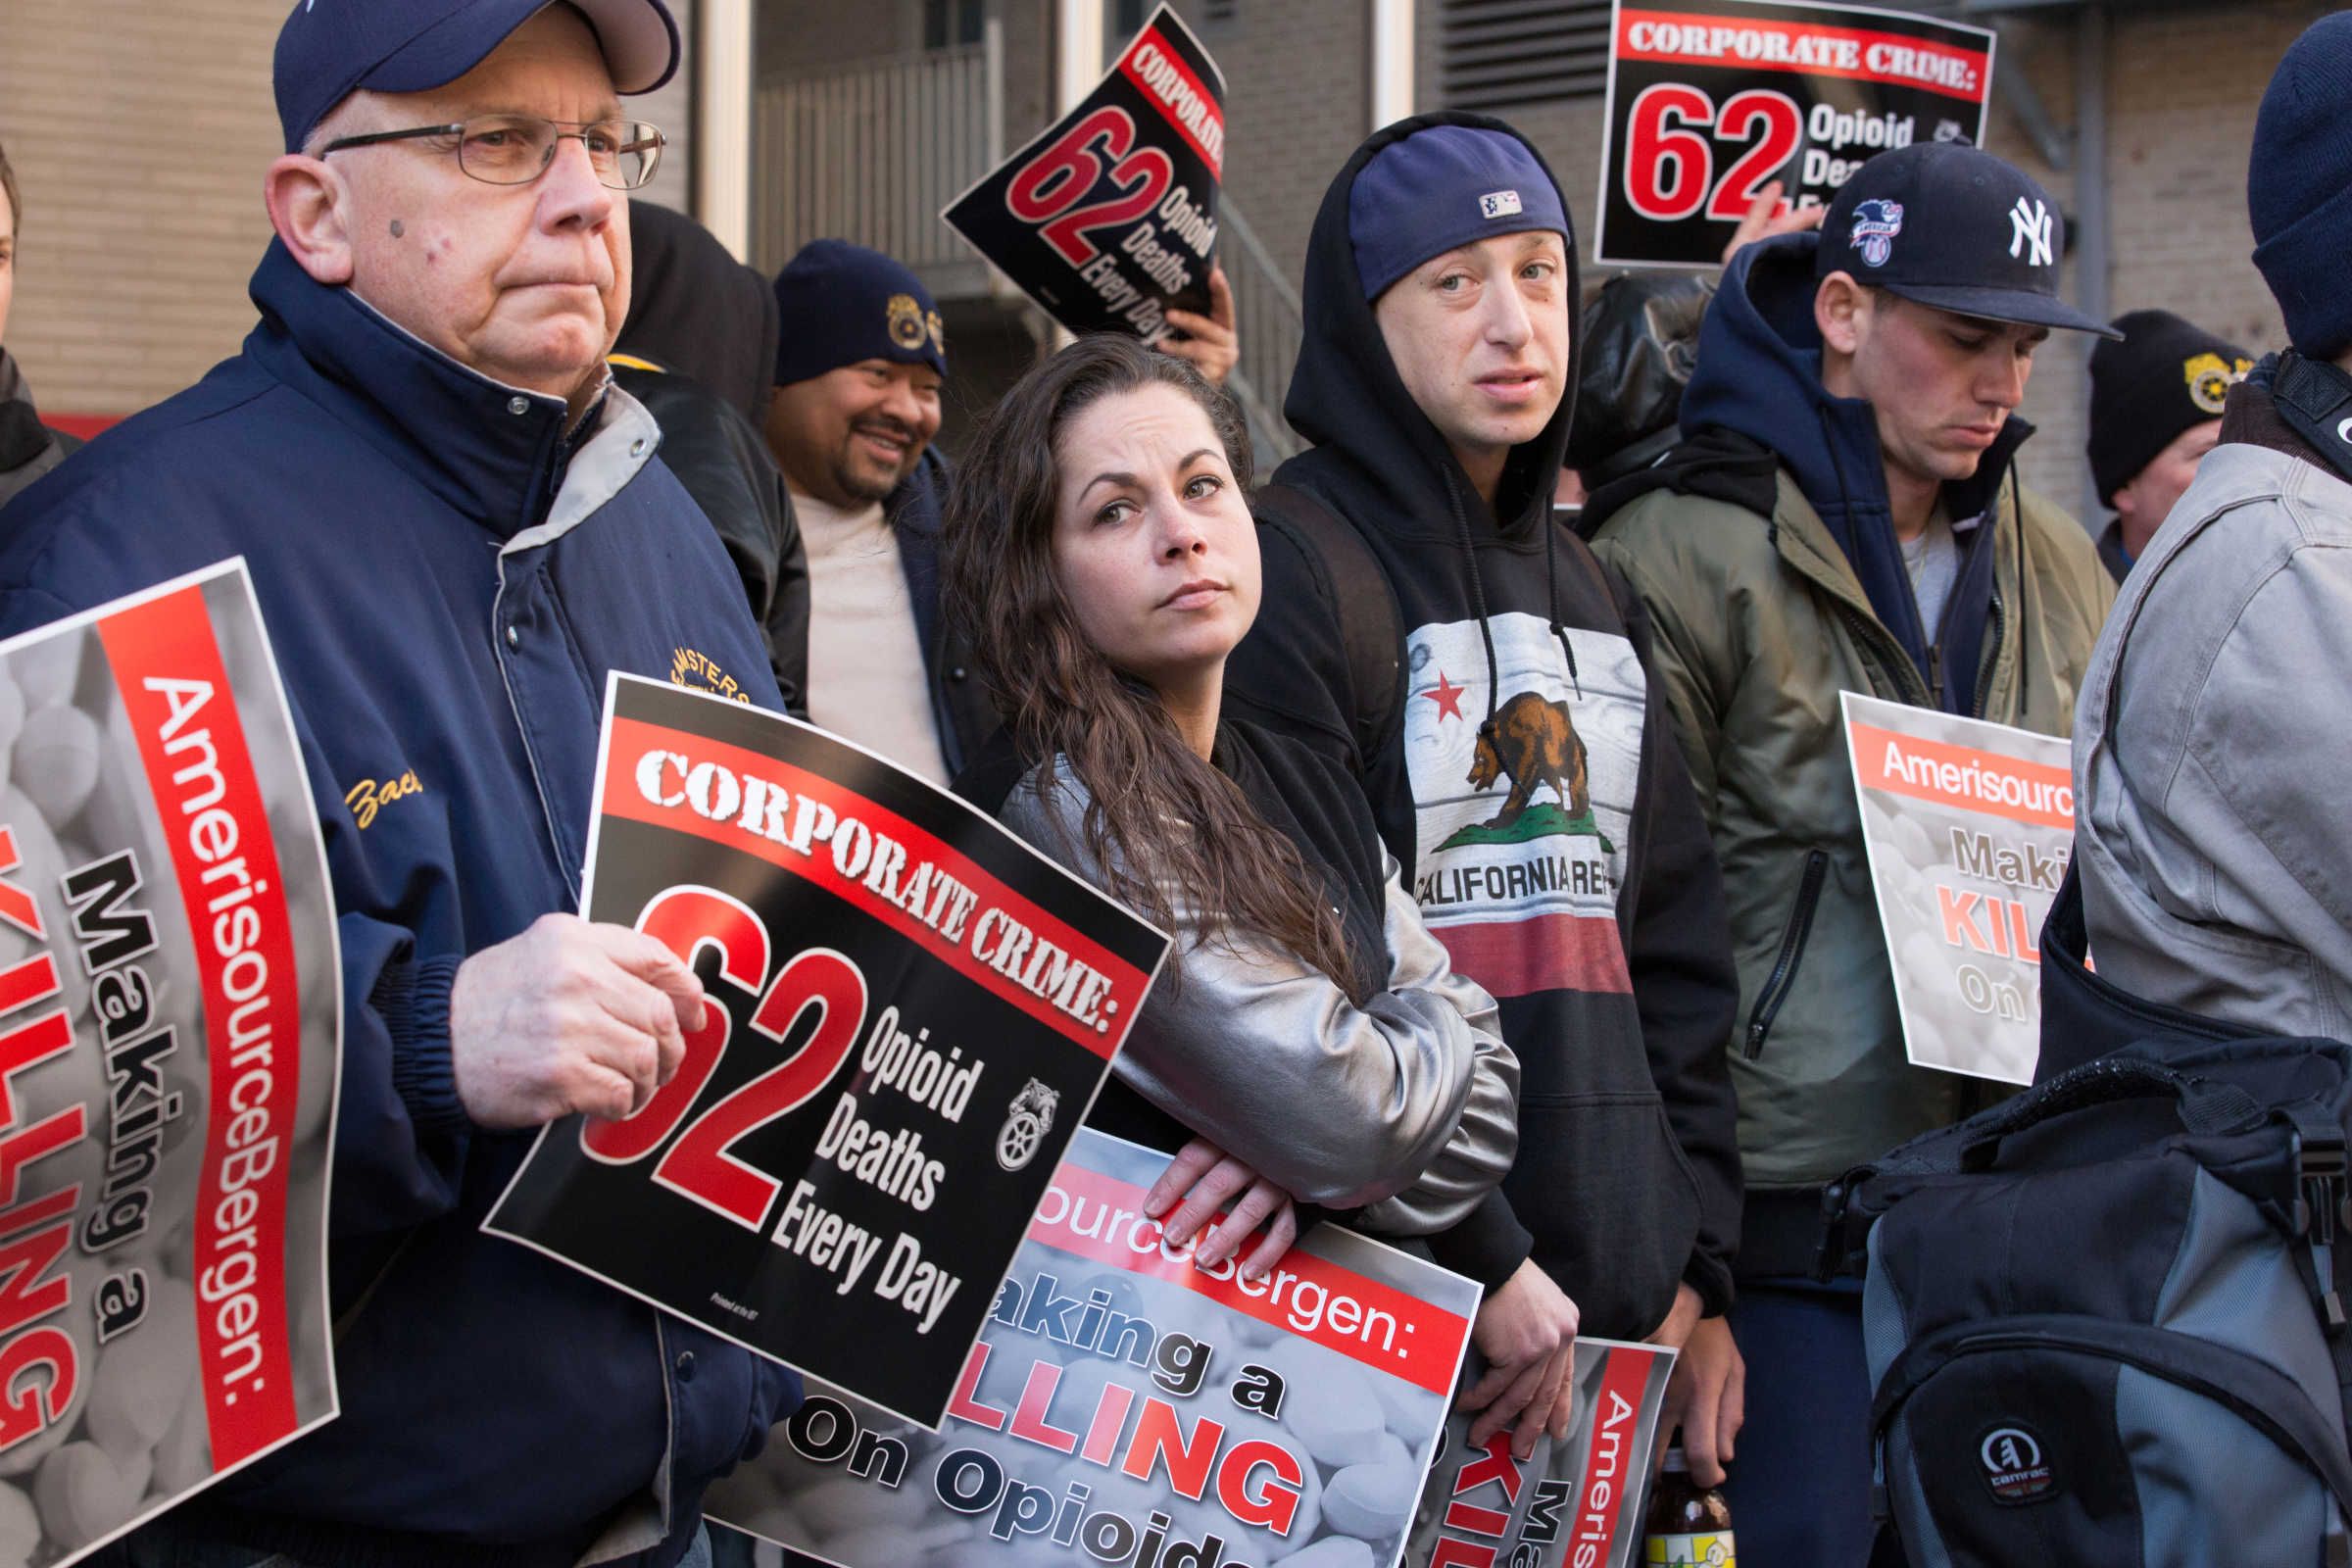 (Left to Right) Mike Zachwieja, Jami Giuffre, Michael White, and Louis DeCero, at a protest with Teamsters outside AmericsourceBergen's annual shareholders meeting at the Sofitel Hotel, in Philadelphia, Thursday, March 2, 2017. The protesters were seeking to point a spotlight at drug wholesaler  AmericsourceBergen's role in the opiod epidemic while union officials inside the meeting were demanding more accountability from the company's board.